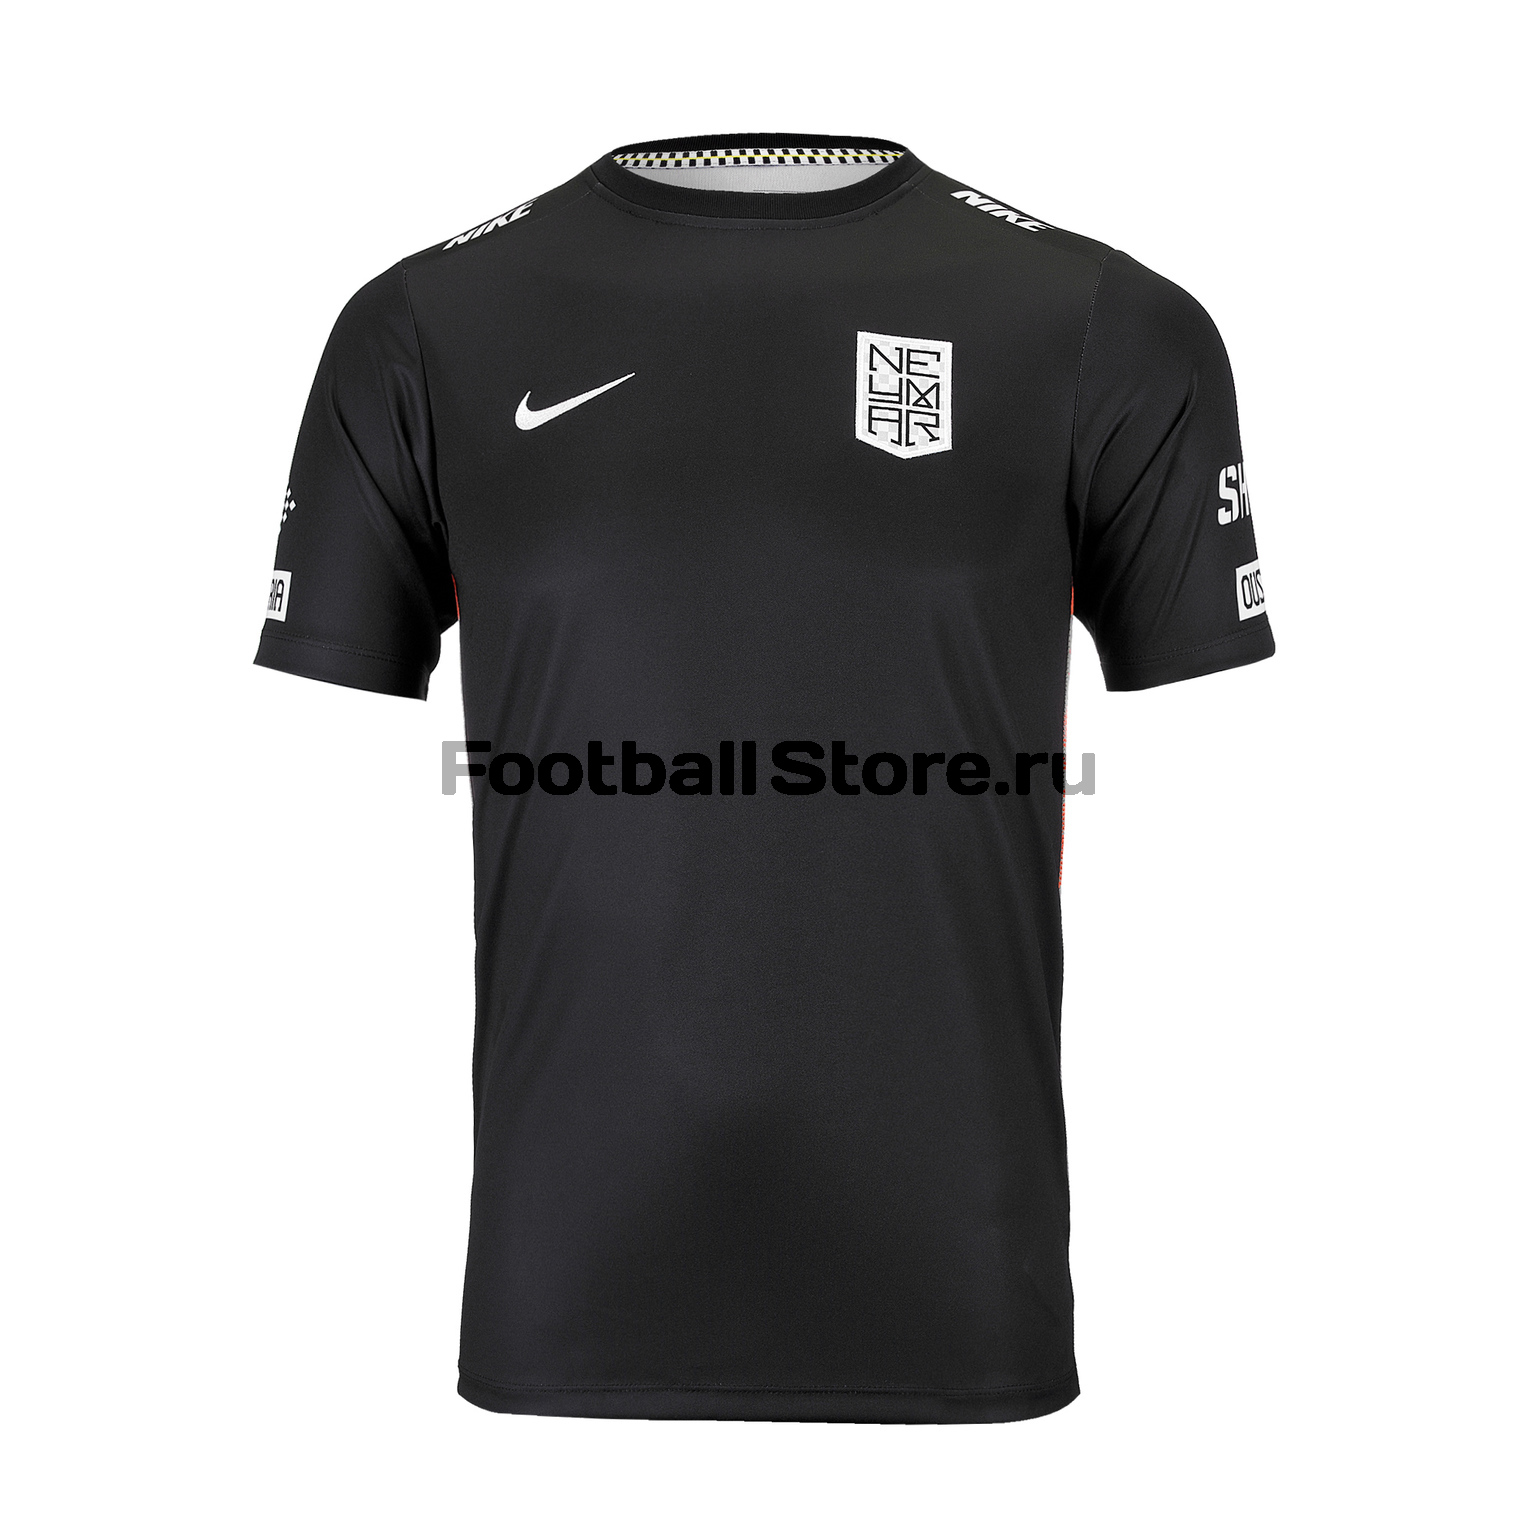 Футболка подростковая Nike Neymar Dry Top SS AT5726-010 футболка nike dry academy top gx at5714 010